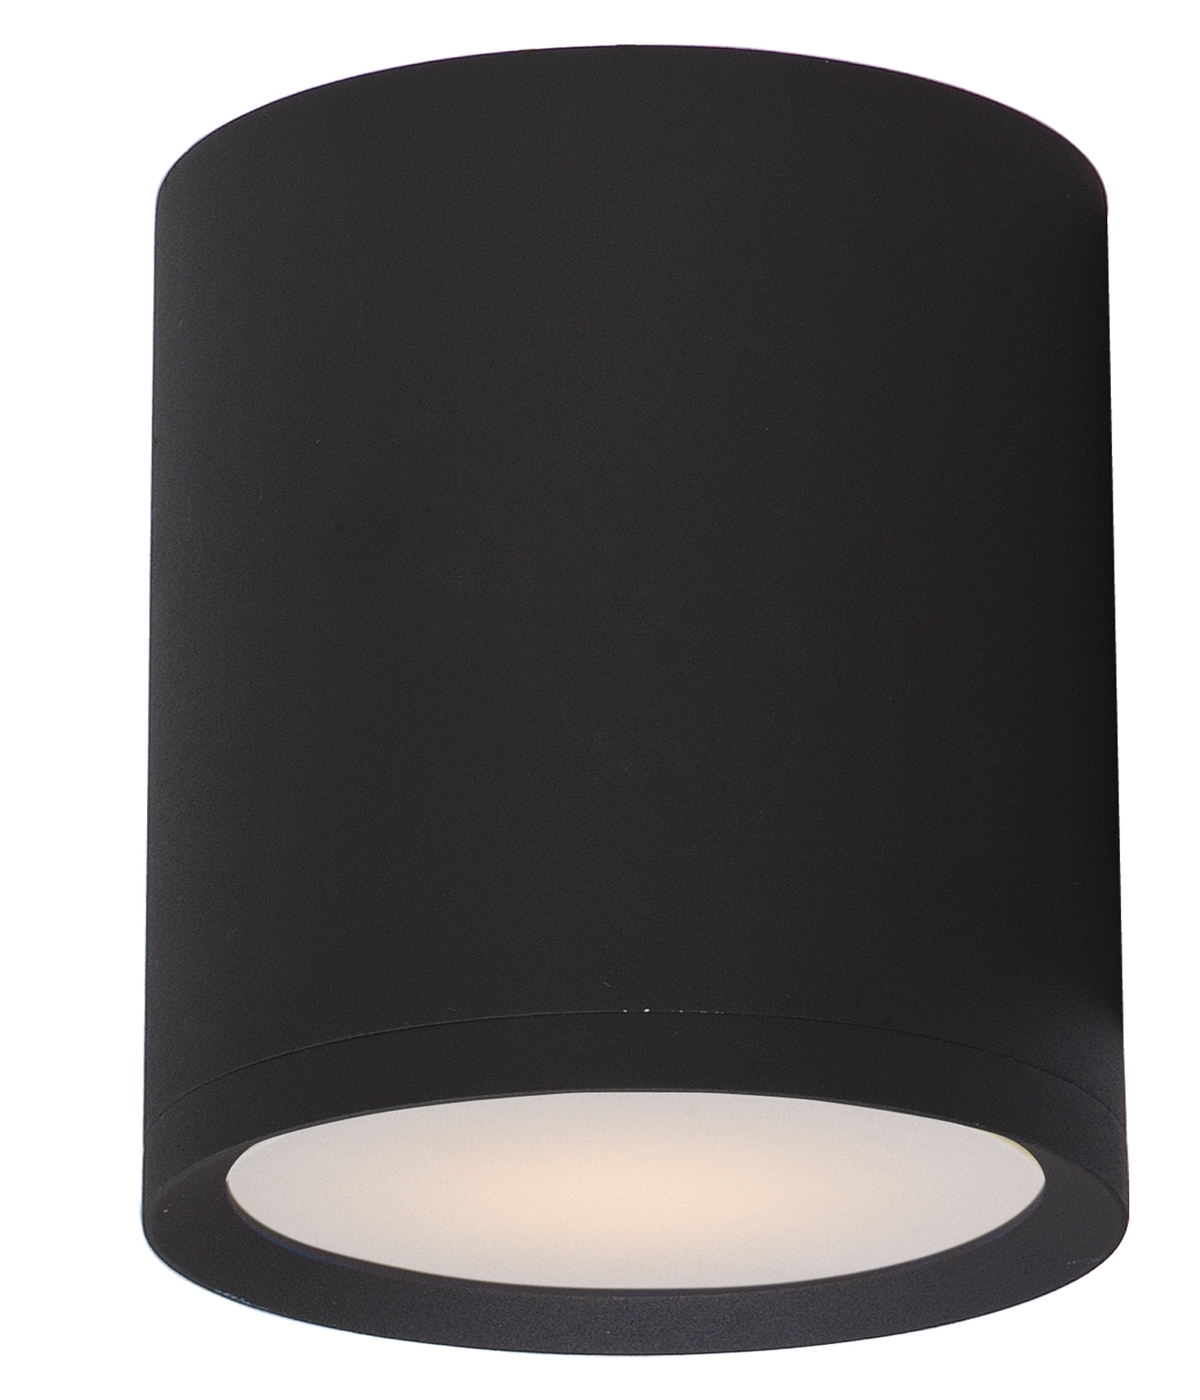 Unique Outdoor Ceiling Lights Within 2018 Outdoor Ceiling Lighting Australia – Coryc (View 20 of 20)